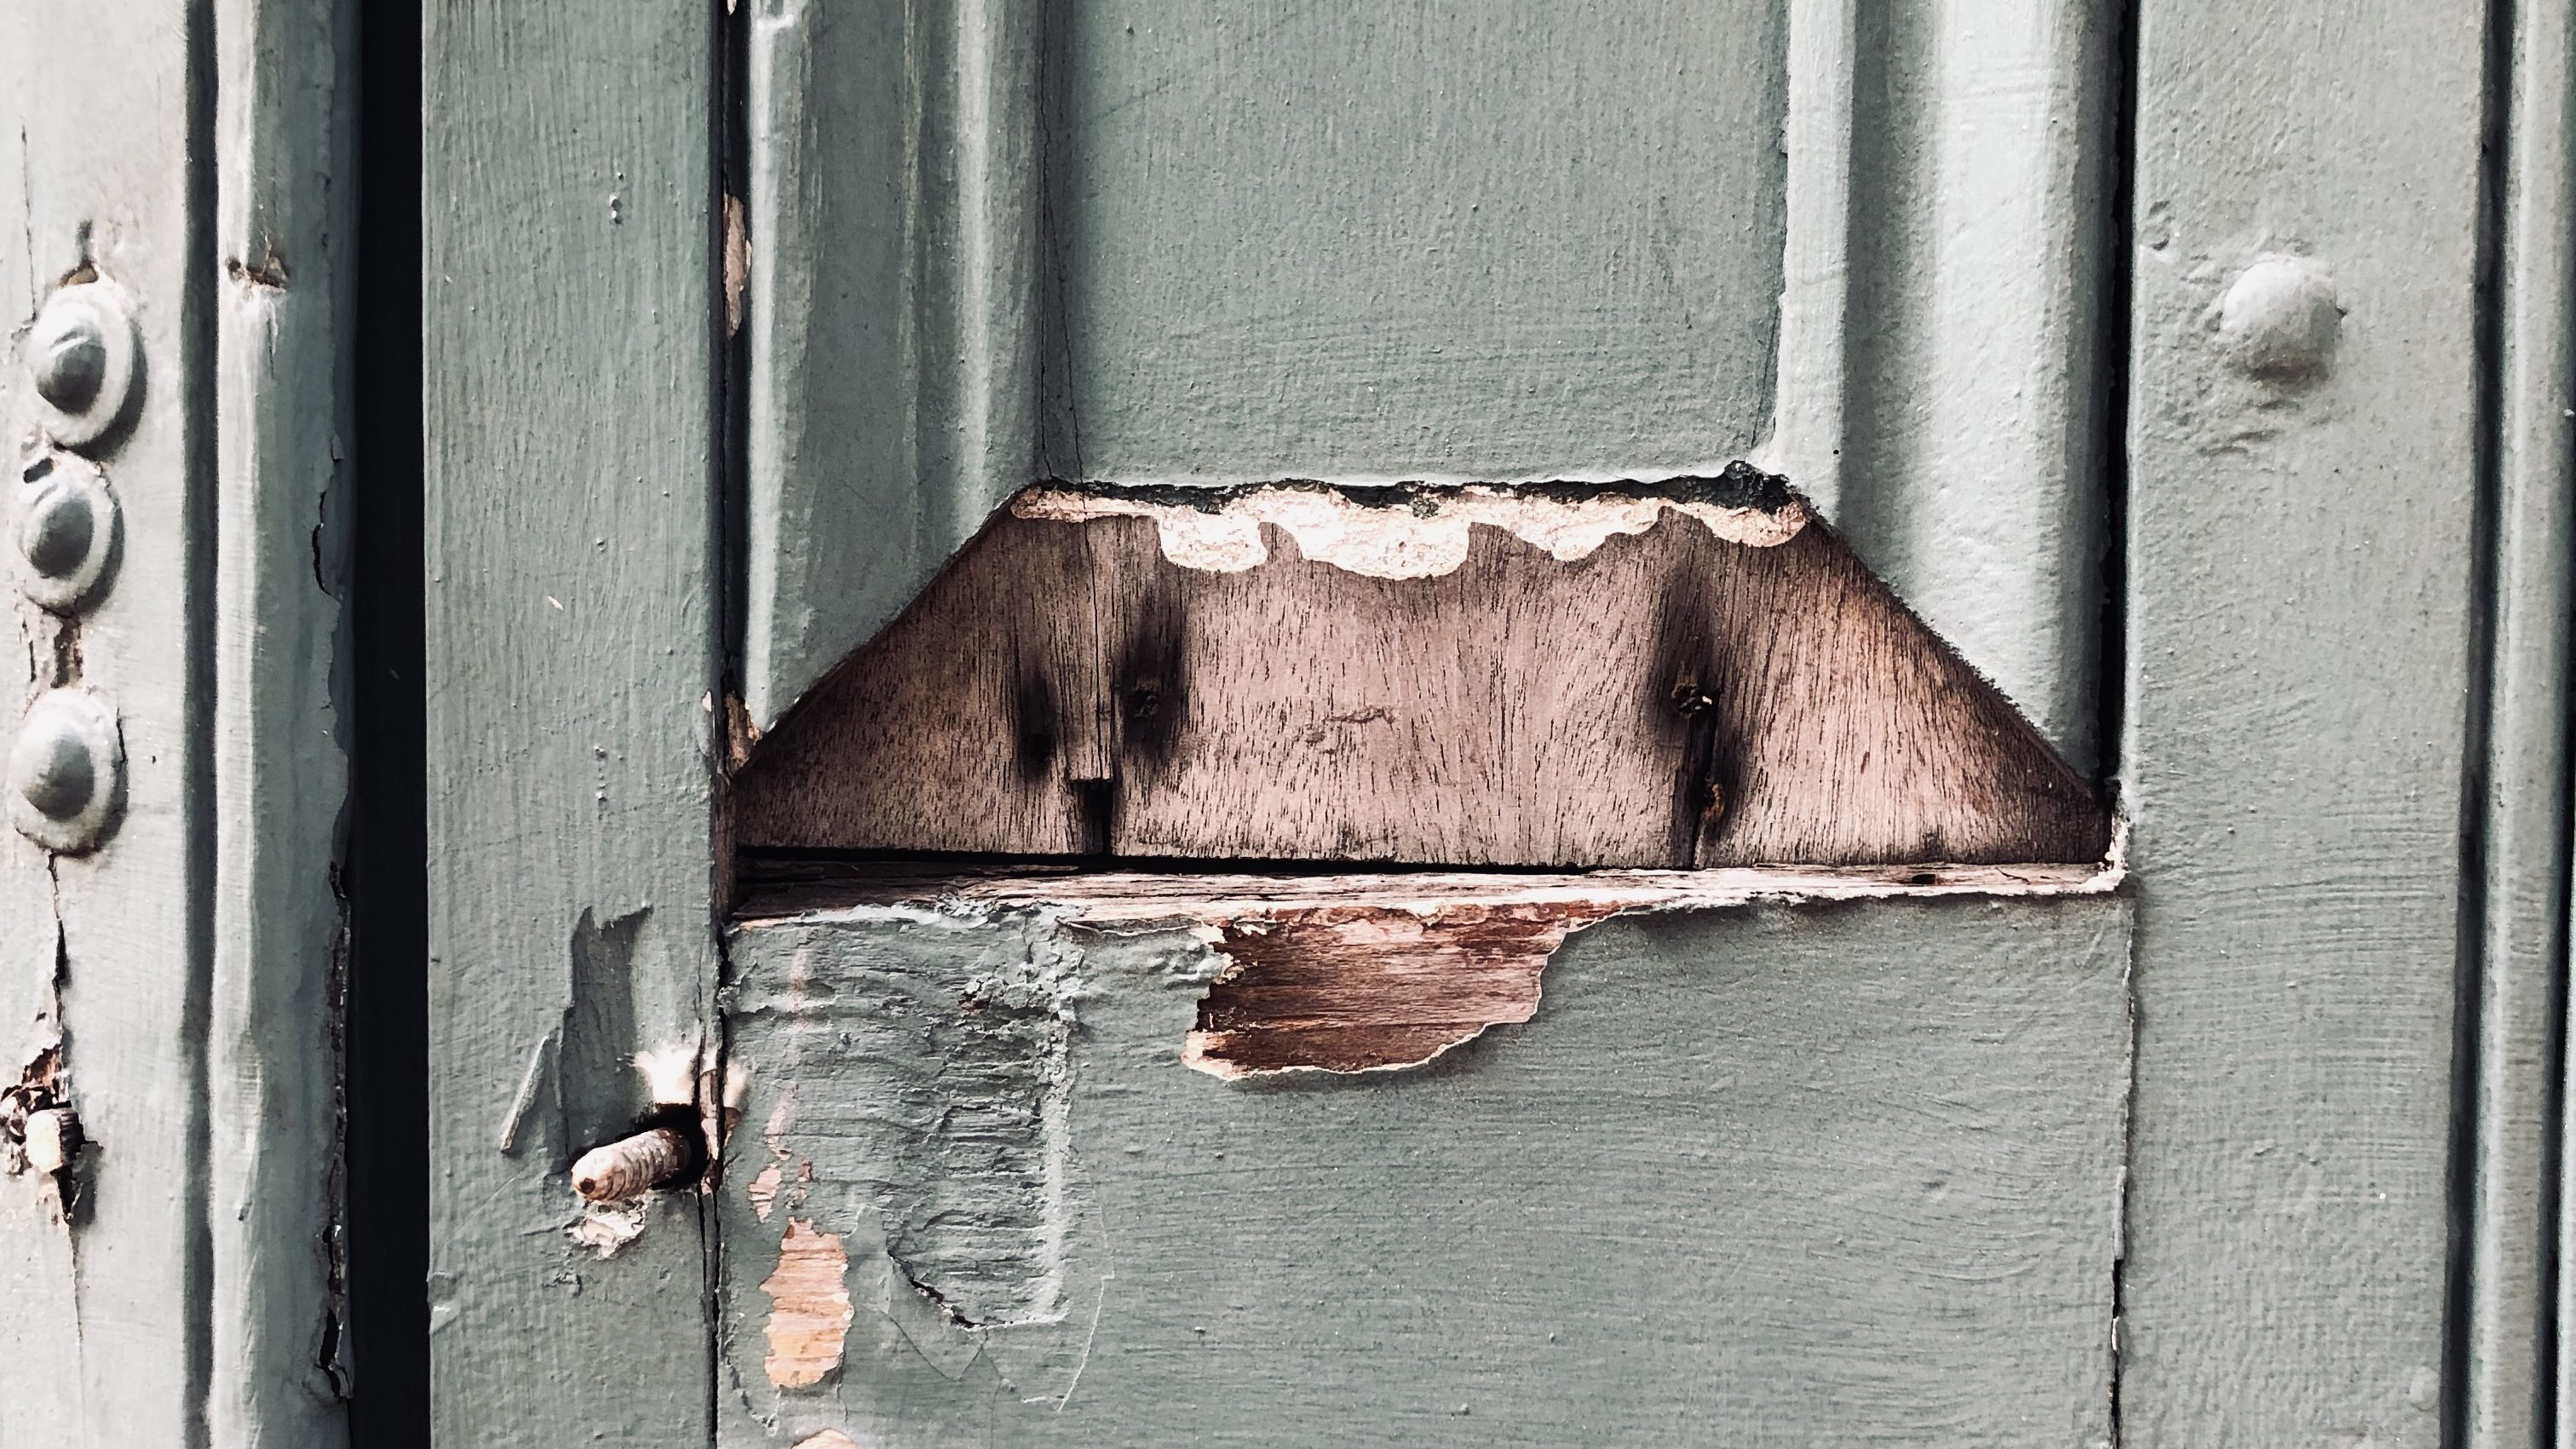 A door with peeling paint